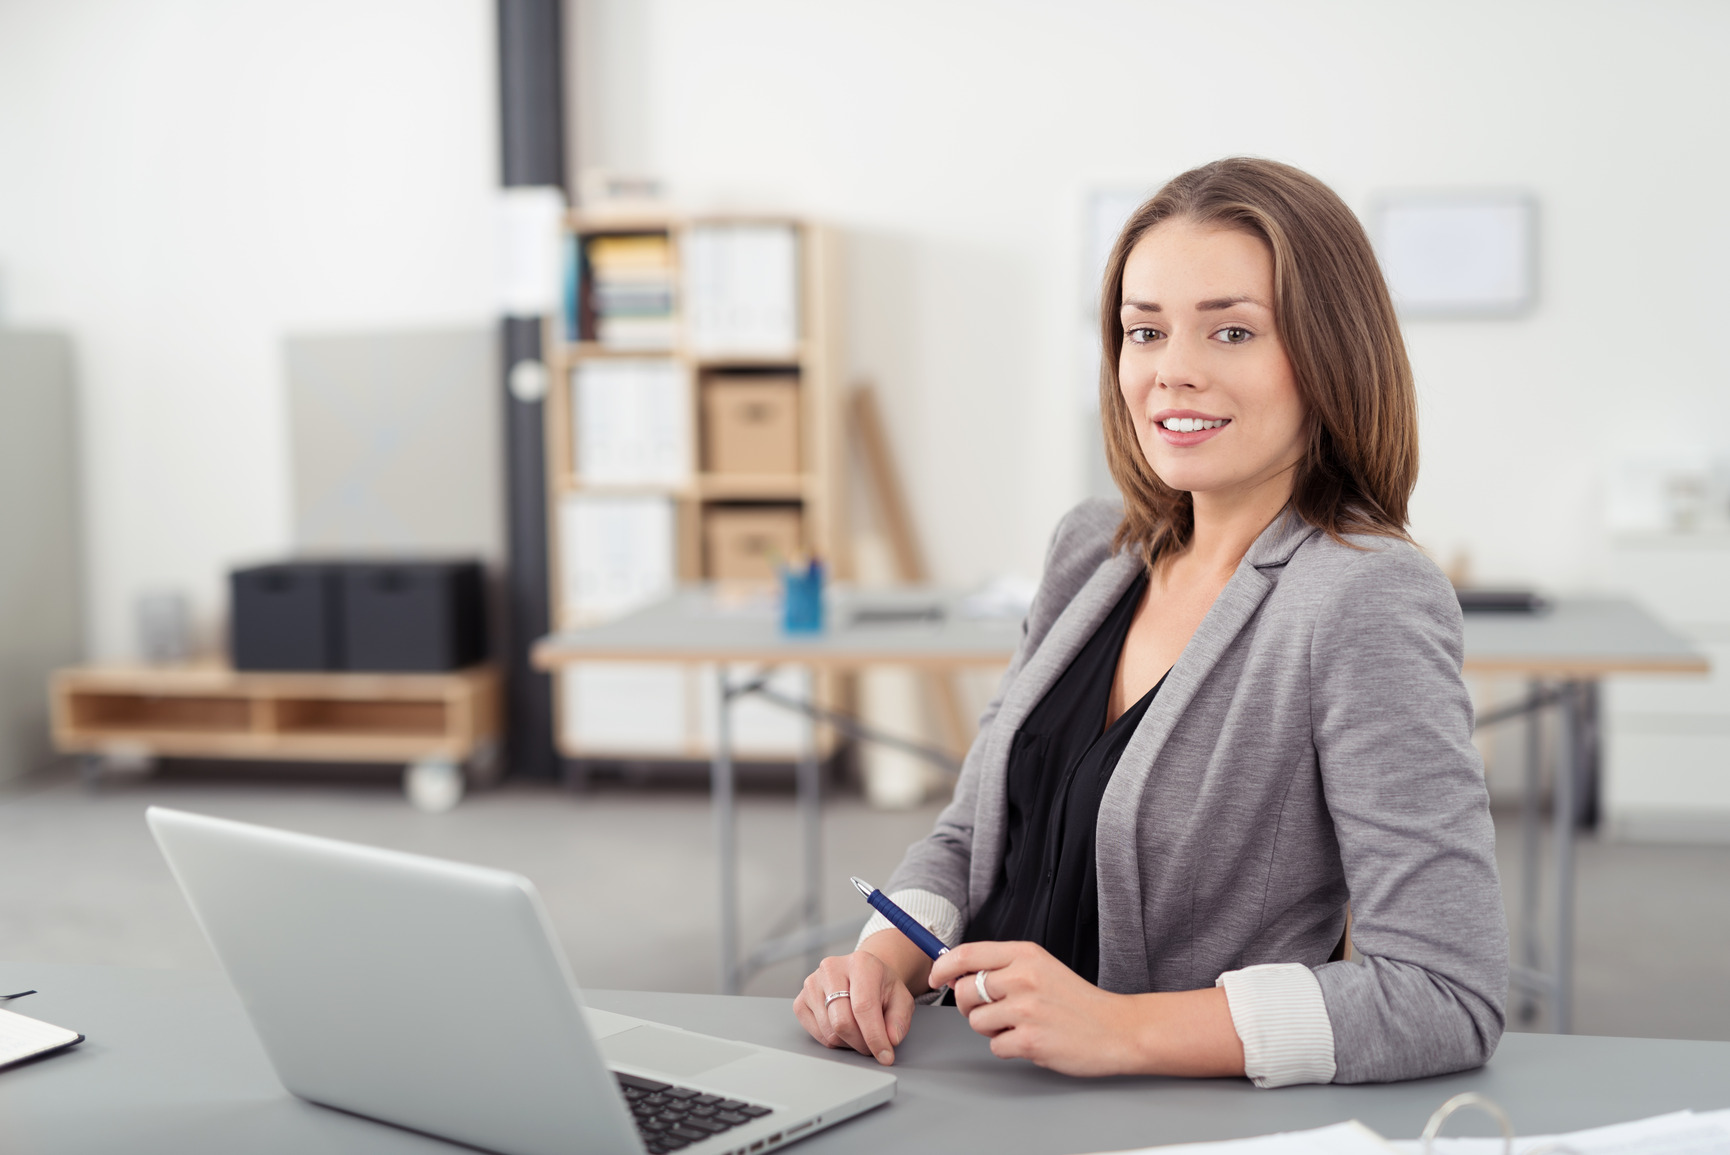 woman manager dissertation Organization is often key to completion of the dissertation effectively, and in a timely fashion one of the most prudent strategies is embracing keen time management strategies the goal is to be one's own project manager.